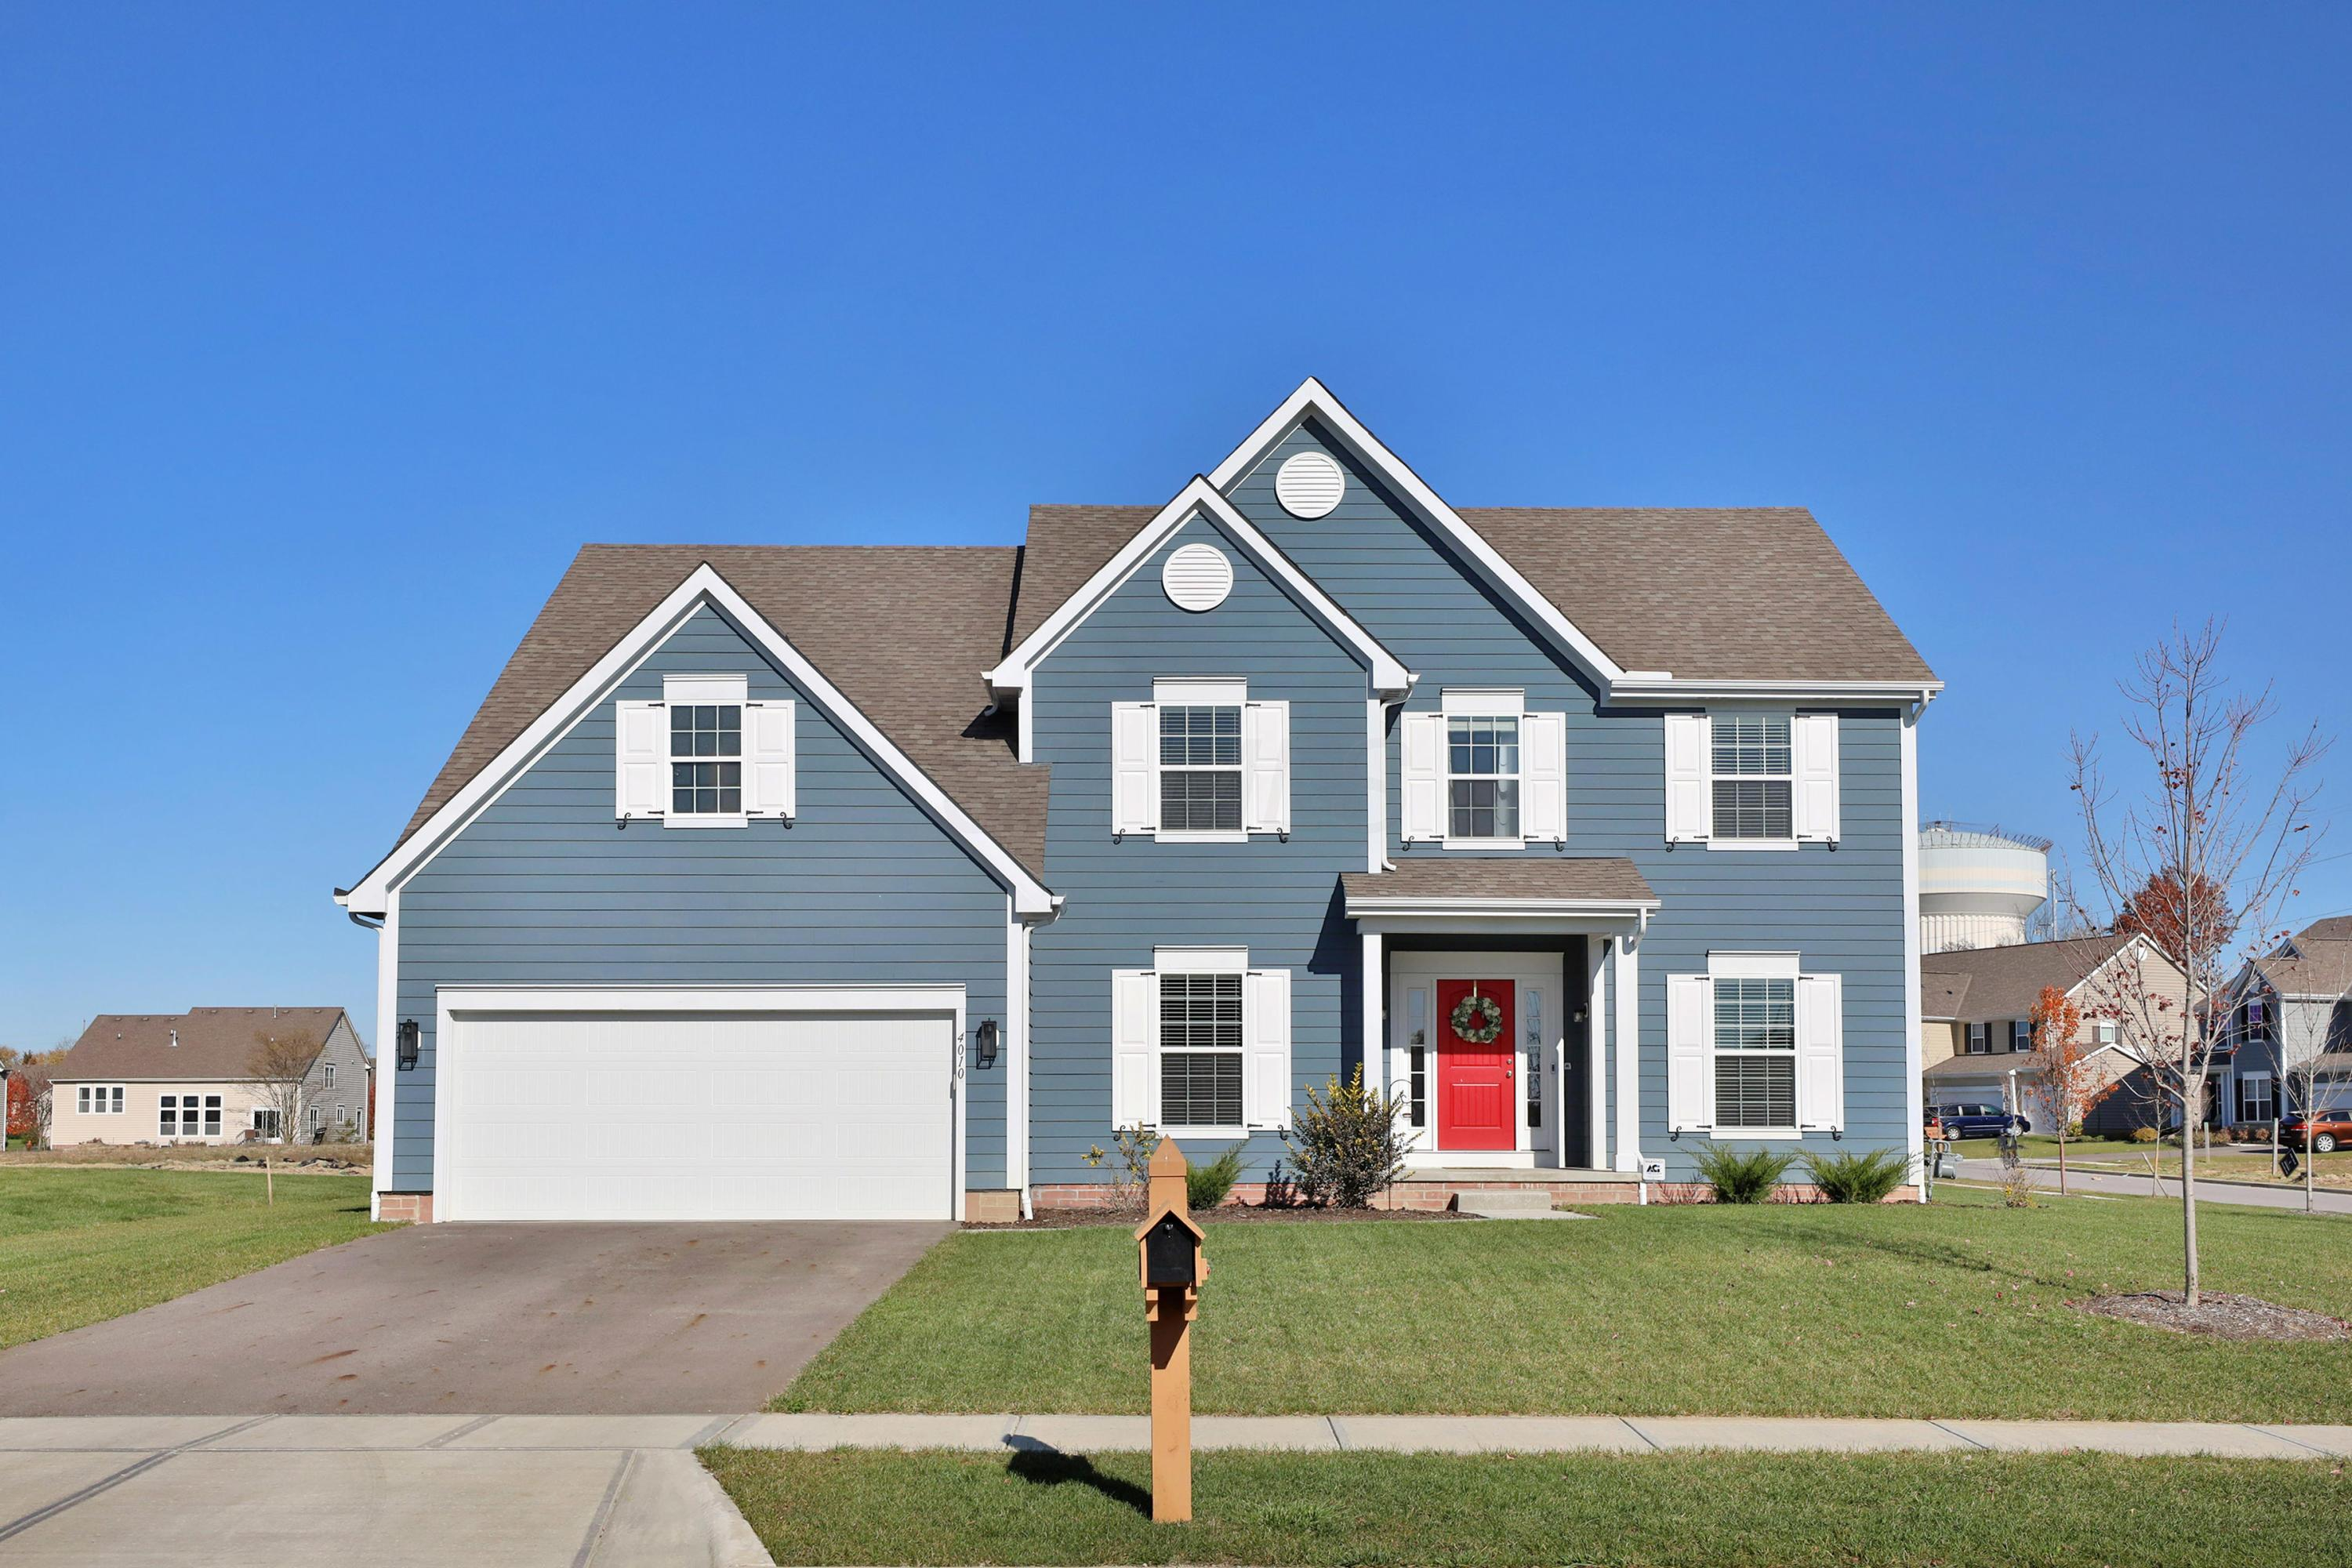 4010 Kelly Court, Dublin, Ohio 43016, 4 Bedrooms Bedrooms, ,4 BathroomsBathrooms,Residential,For Sale,Kelly,220039963